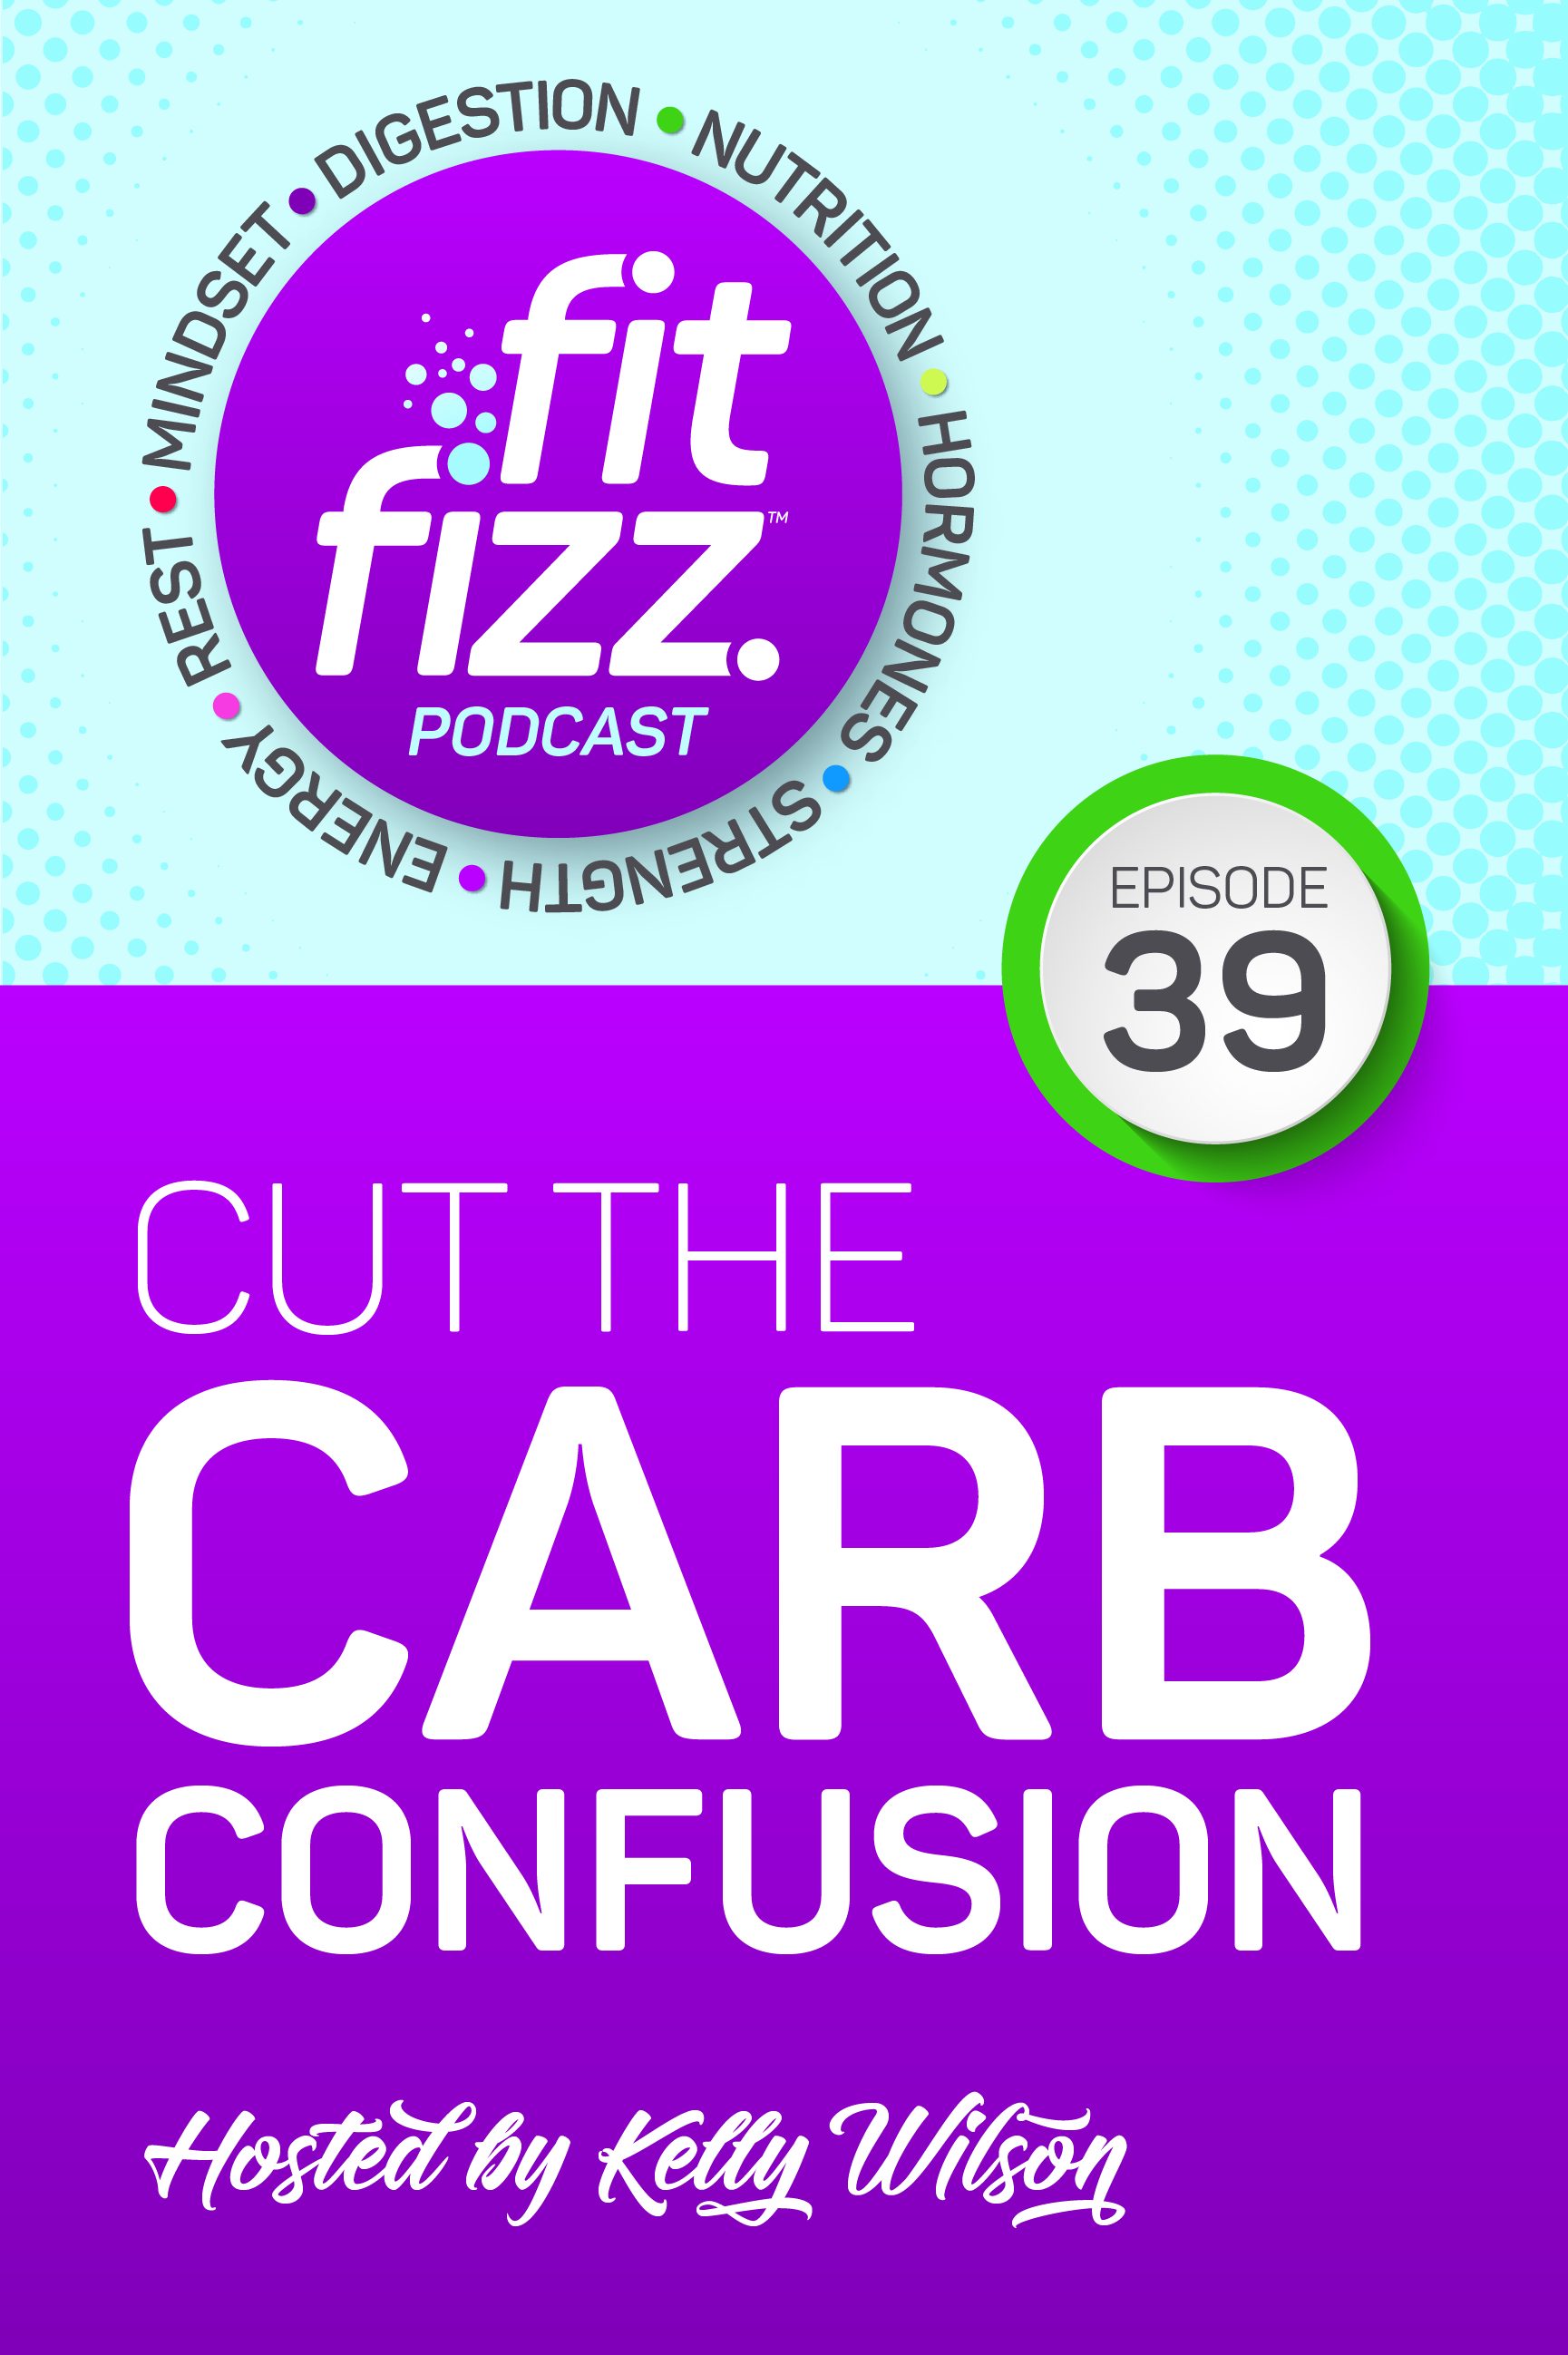 EP39: Cut the Carb Confusion